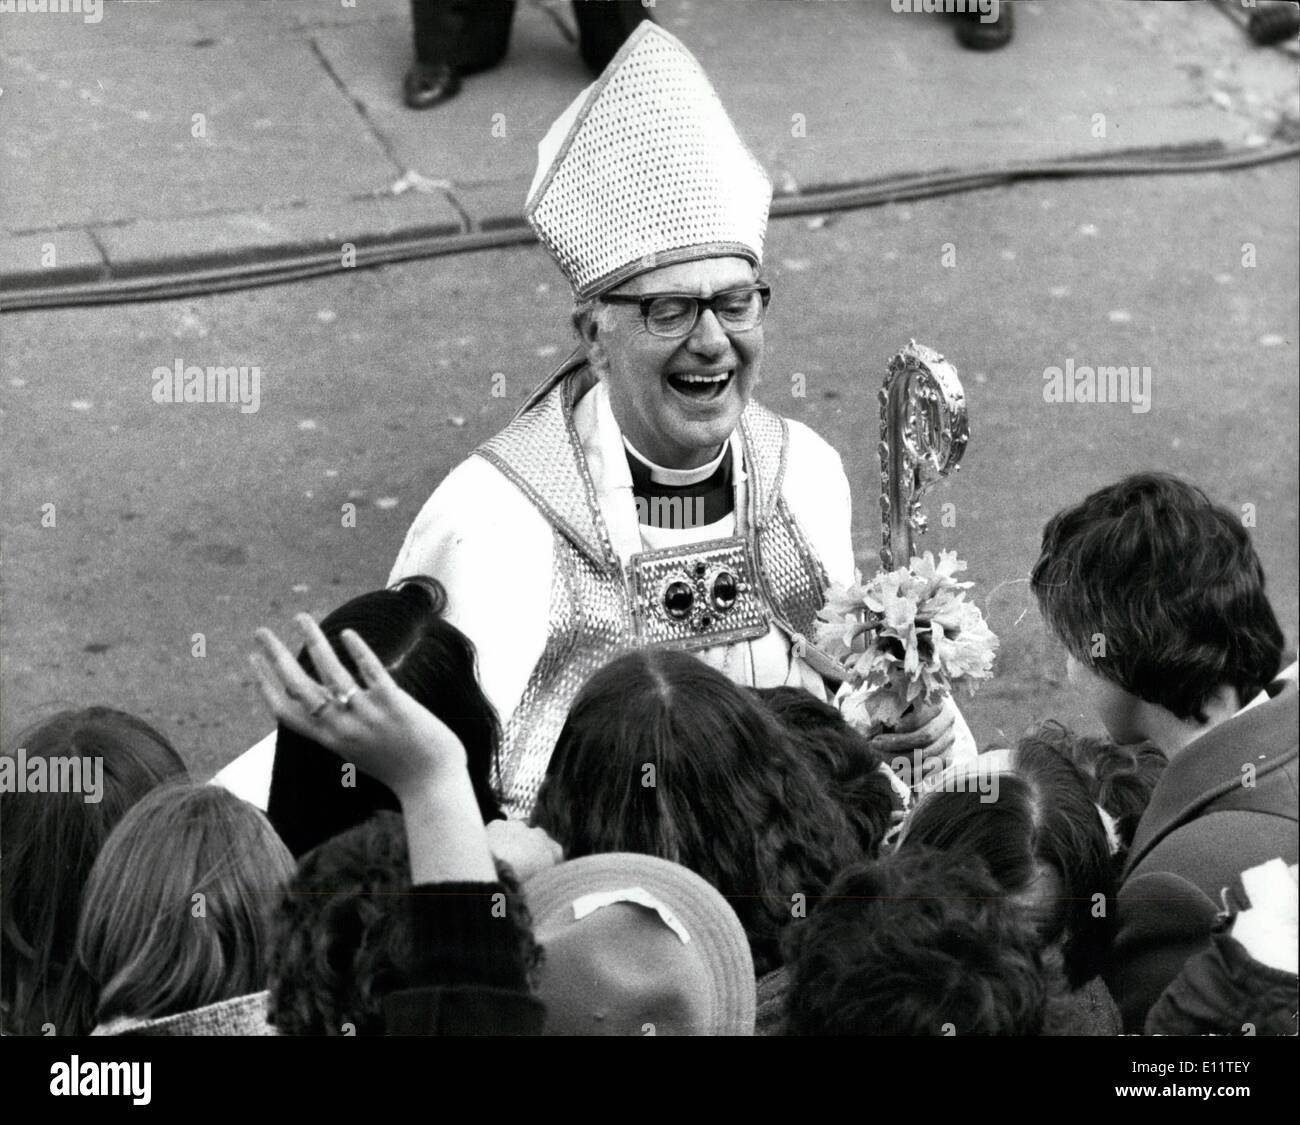 Mar. 03, 1980 - Enthronement of Archbishop Runcie: the 102nd Archbishop of Canterbury, Robert Runcie, was enthrone in ancient splendour in Canterbury Cathedral. More than 3,000 guests which included Prince Charles and Princess Margaret. Photo shows The Archbishop of Canterbury in high spirits as he joined the crowd waiting to greet him outside Canterbury Cathedral after his enthronement. - Stock Image